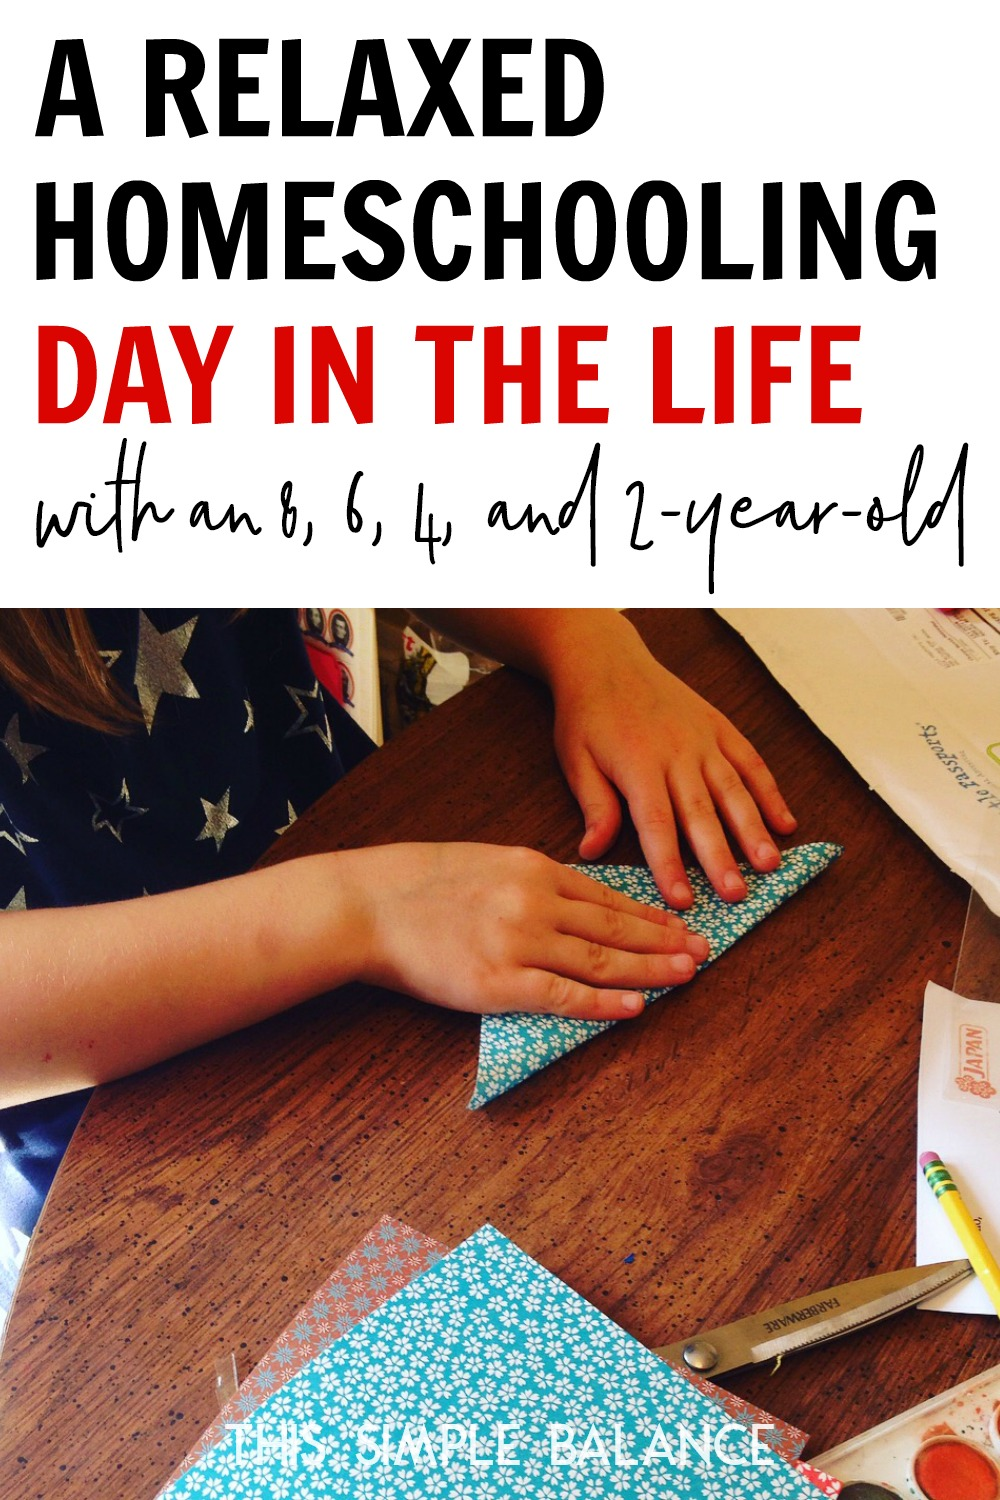 Relaxed Homeschooling Day in the Life: with an 8, 6, 4. and 2 year old